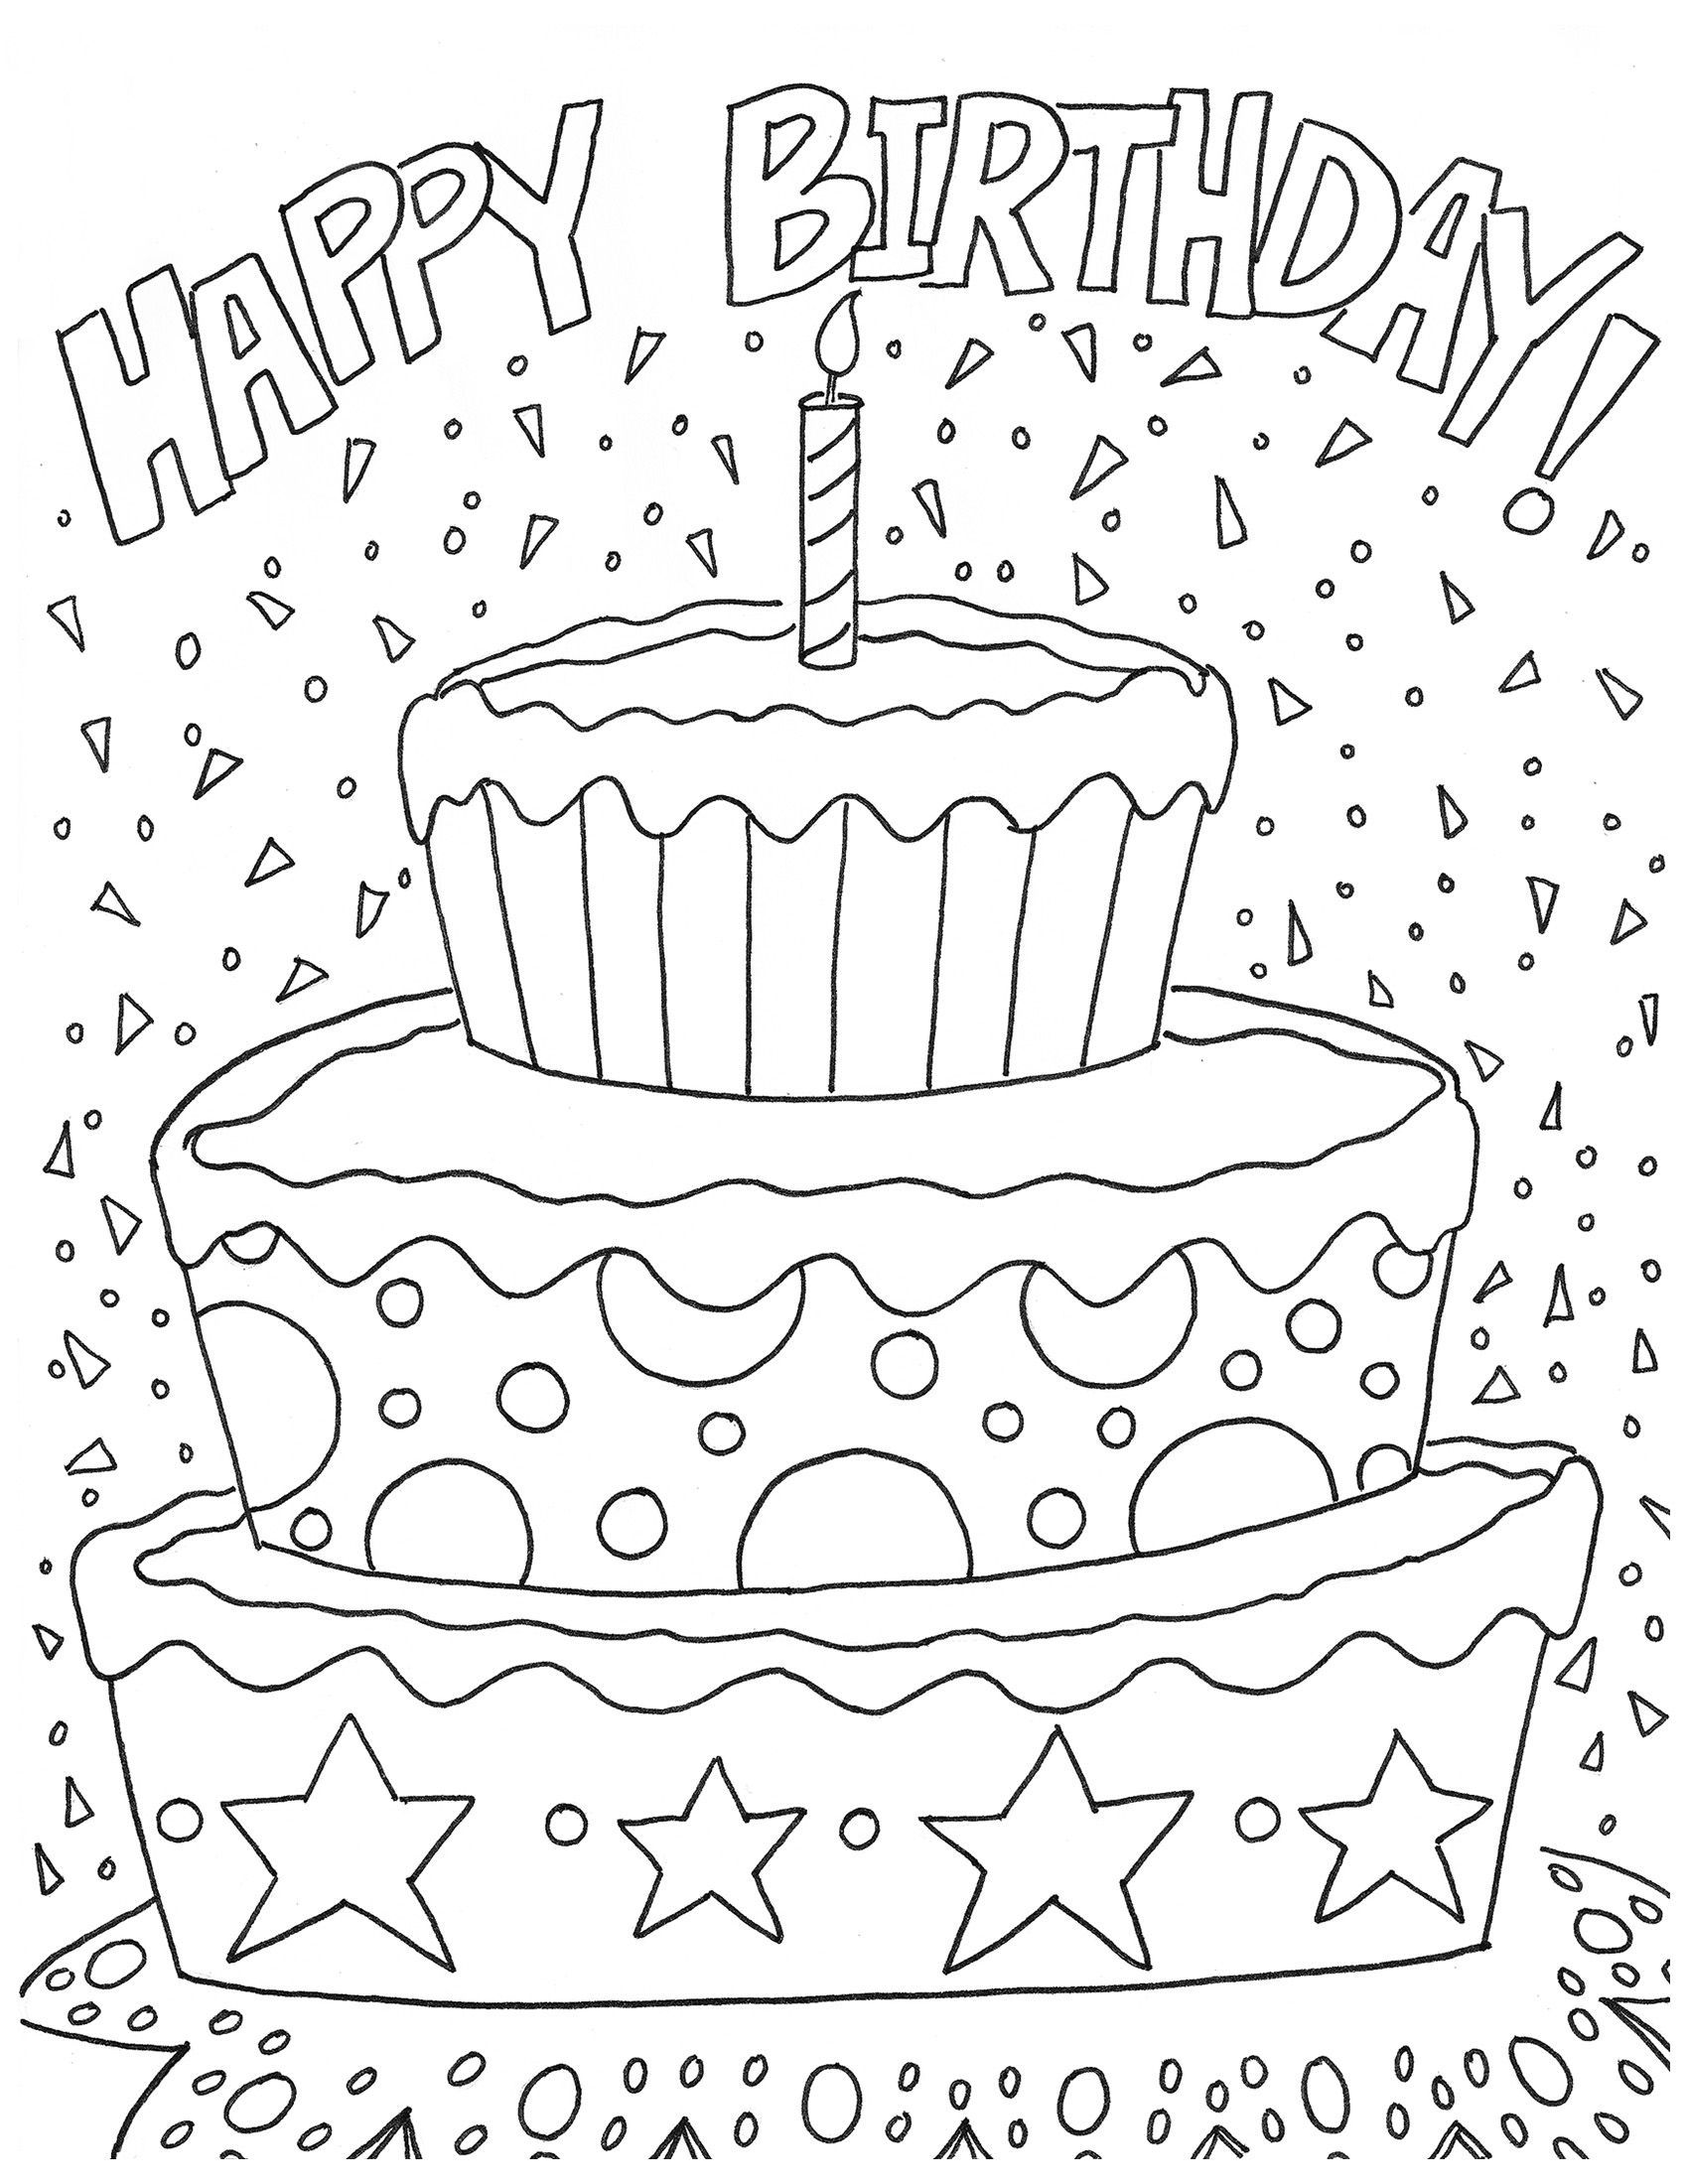 Coloring Pages For Moms Birthdays Preschool Mothers Day Cards